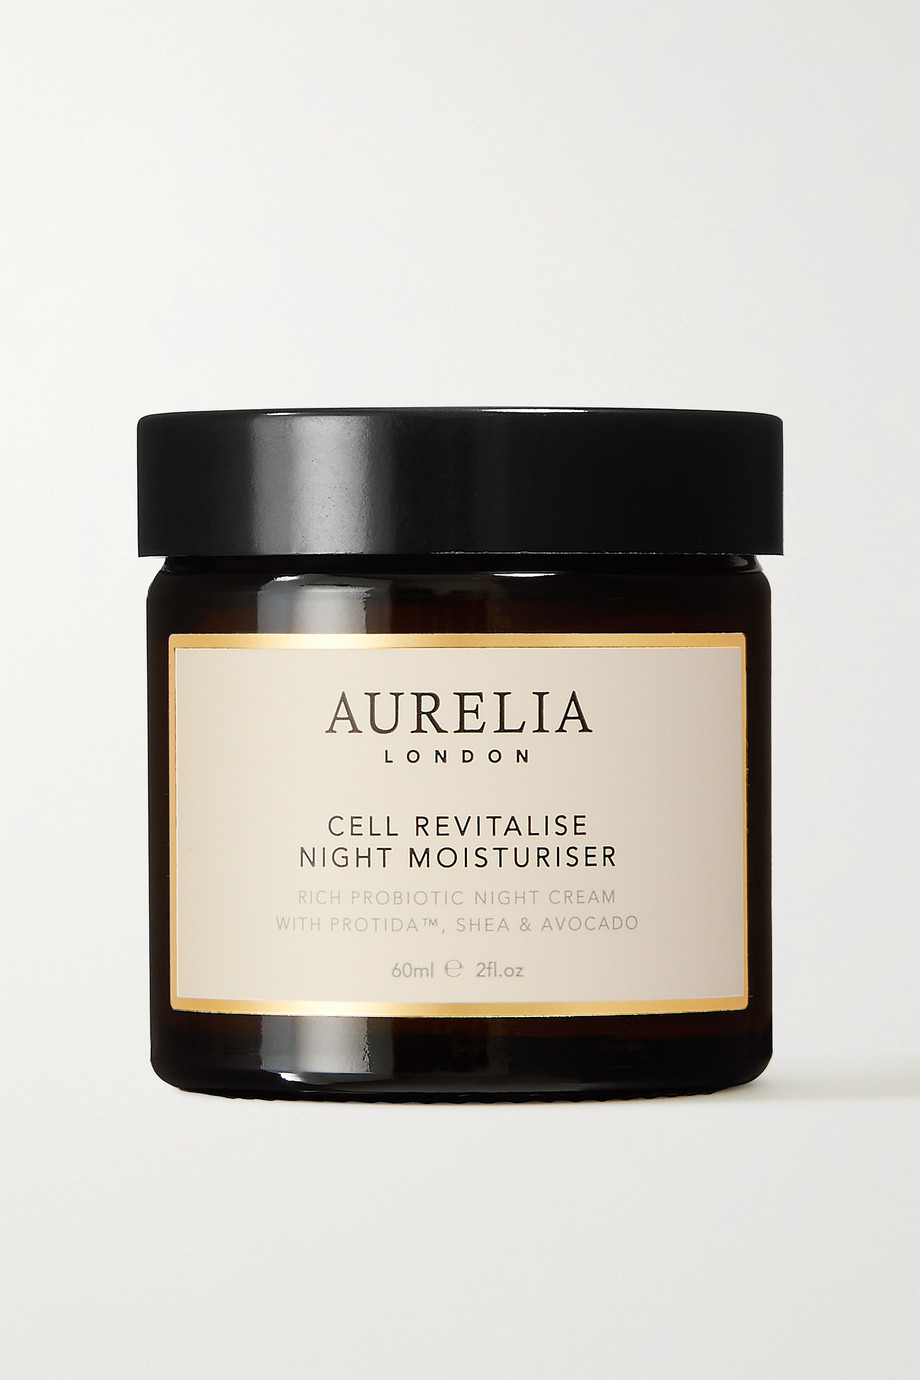 Cell Revitalize Night Moisturizer, 60ml, by Aurelia Probiotic Skincare